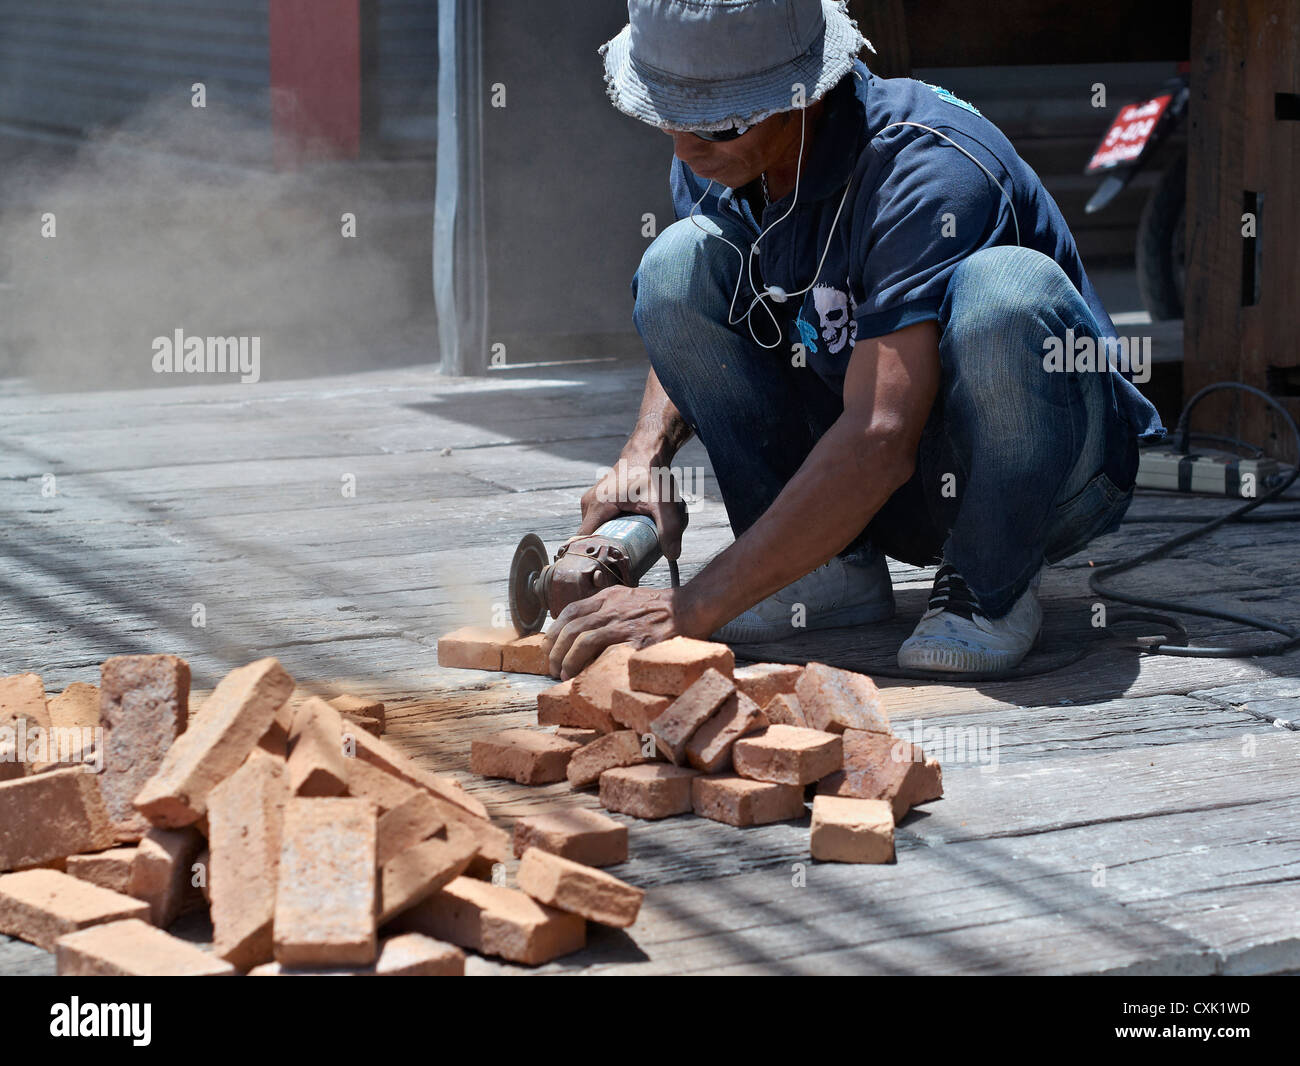 Builder using a hand powered angle grinder to cut bricks. Thailand S.E. Asia - Stock Image